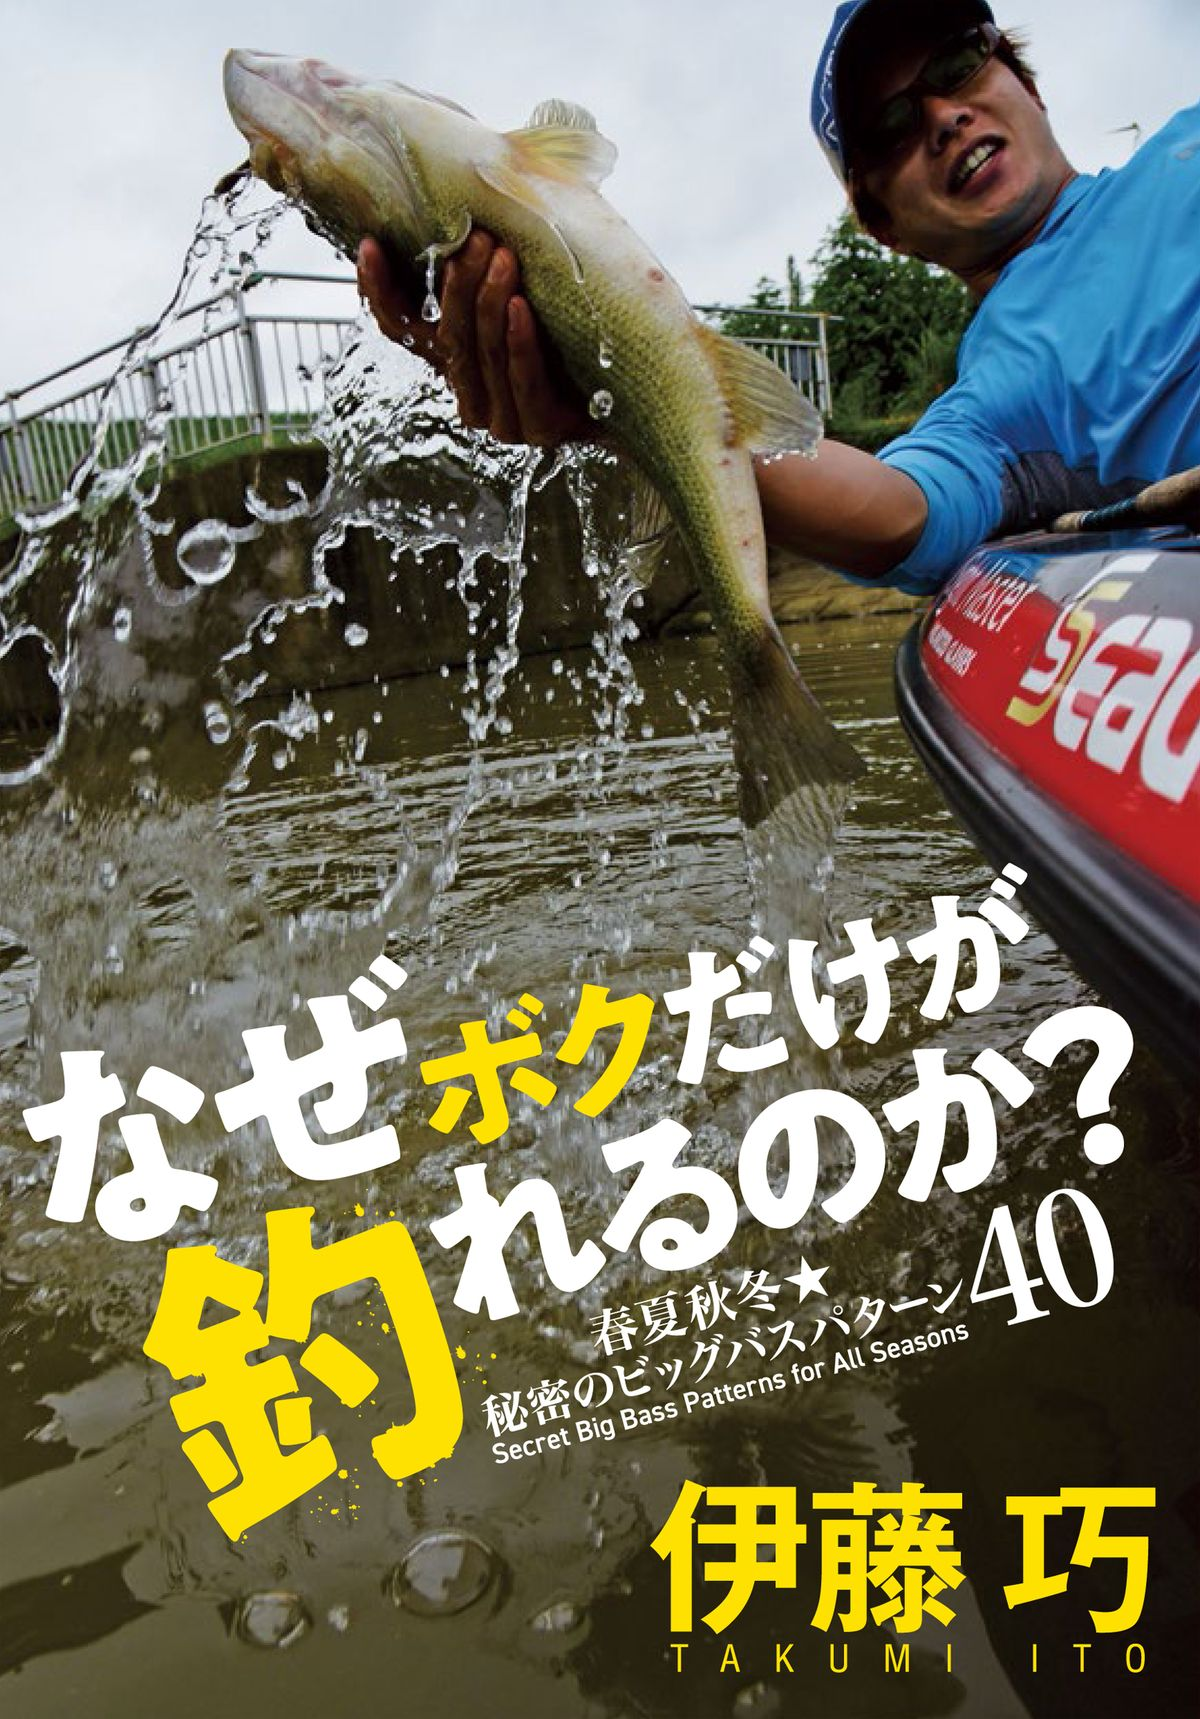 hyoushi_cover_fin_new